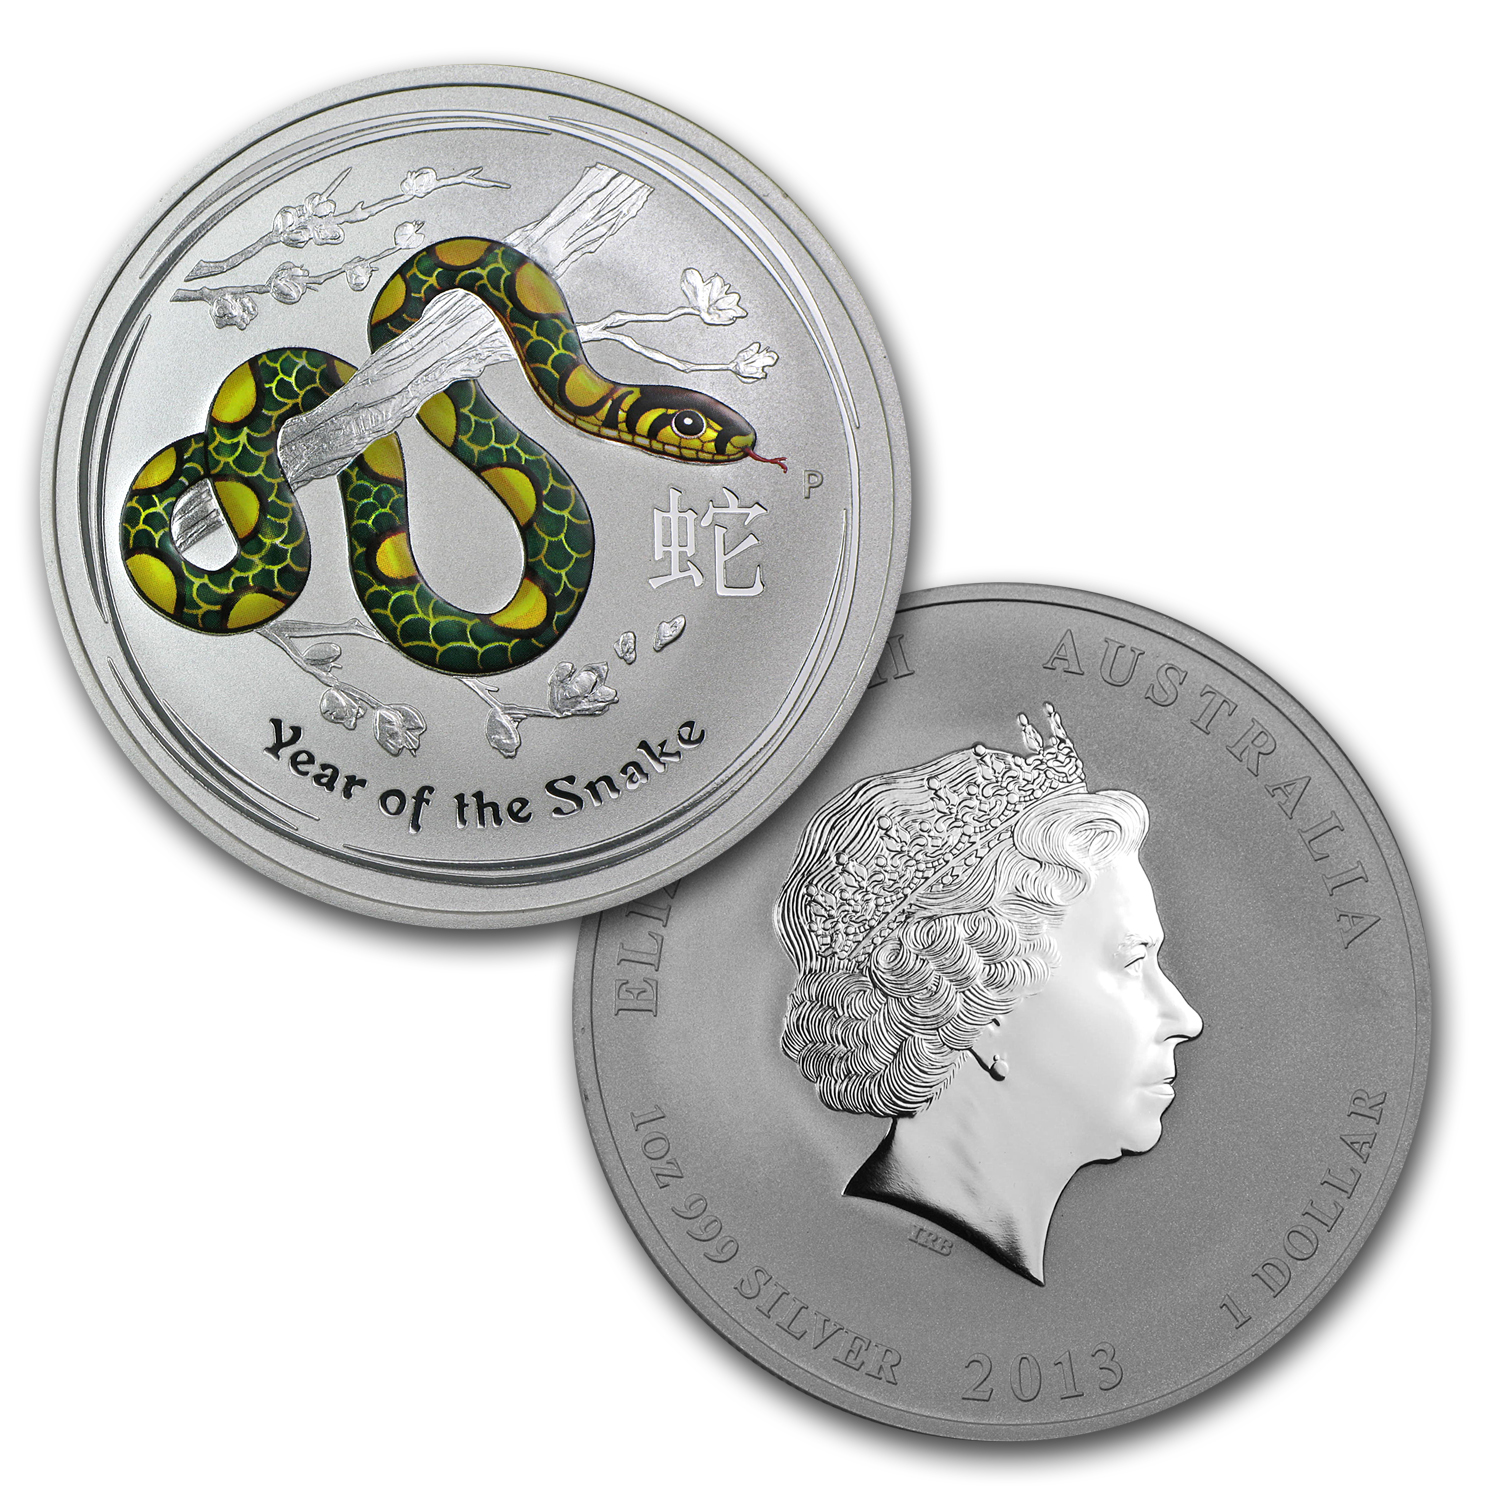 2013 4-Coin 1 oz Silver Australian Year of the Snake Type Set